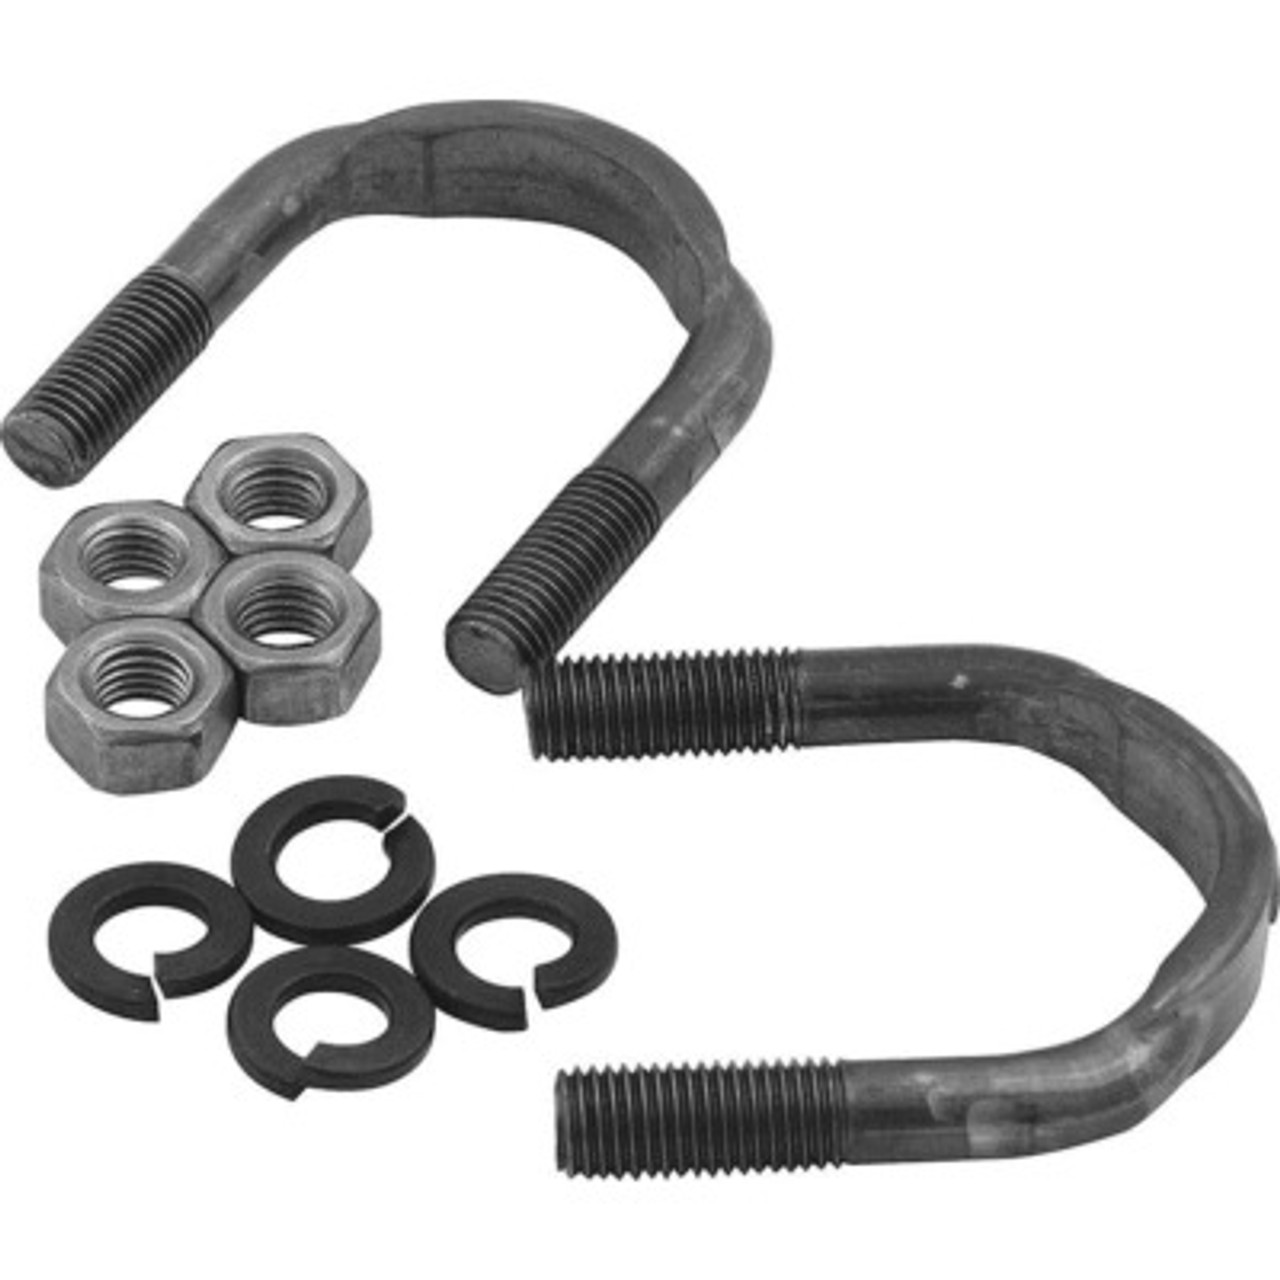 ALL69018, U-BOLT KIT FOR 1330U-JOINT